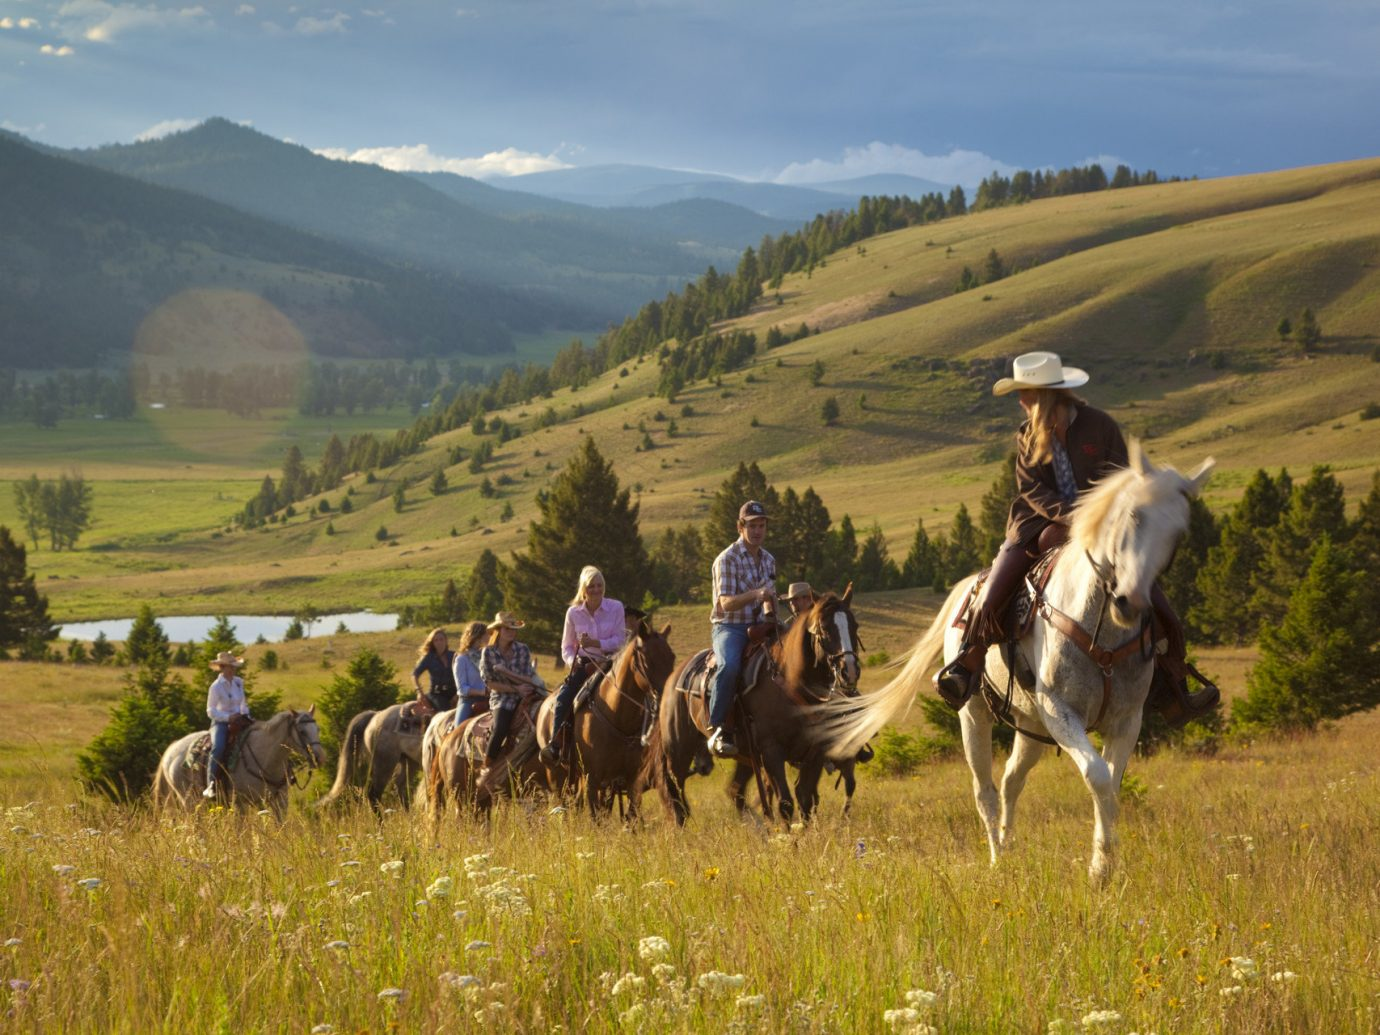 Trip Ideas grass mountain outdoor sky pasture horse grassland trail riding natural environment field herd plain grazing steppe prairie meadow landscape rural area Nature horse like mammal animal sports equestrianism Ranch highland bovine hillside